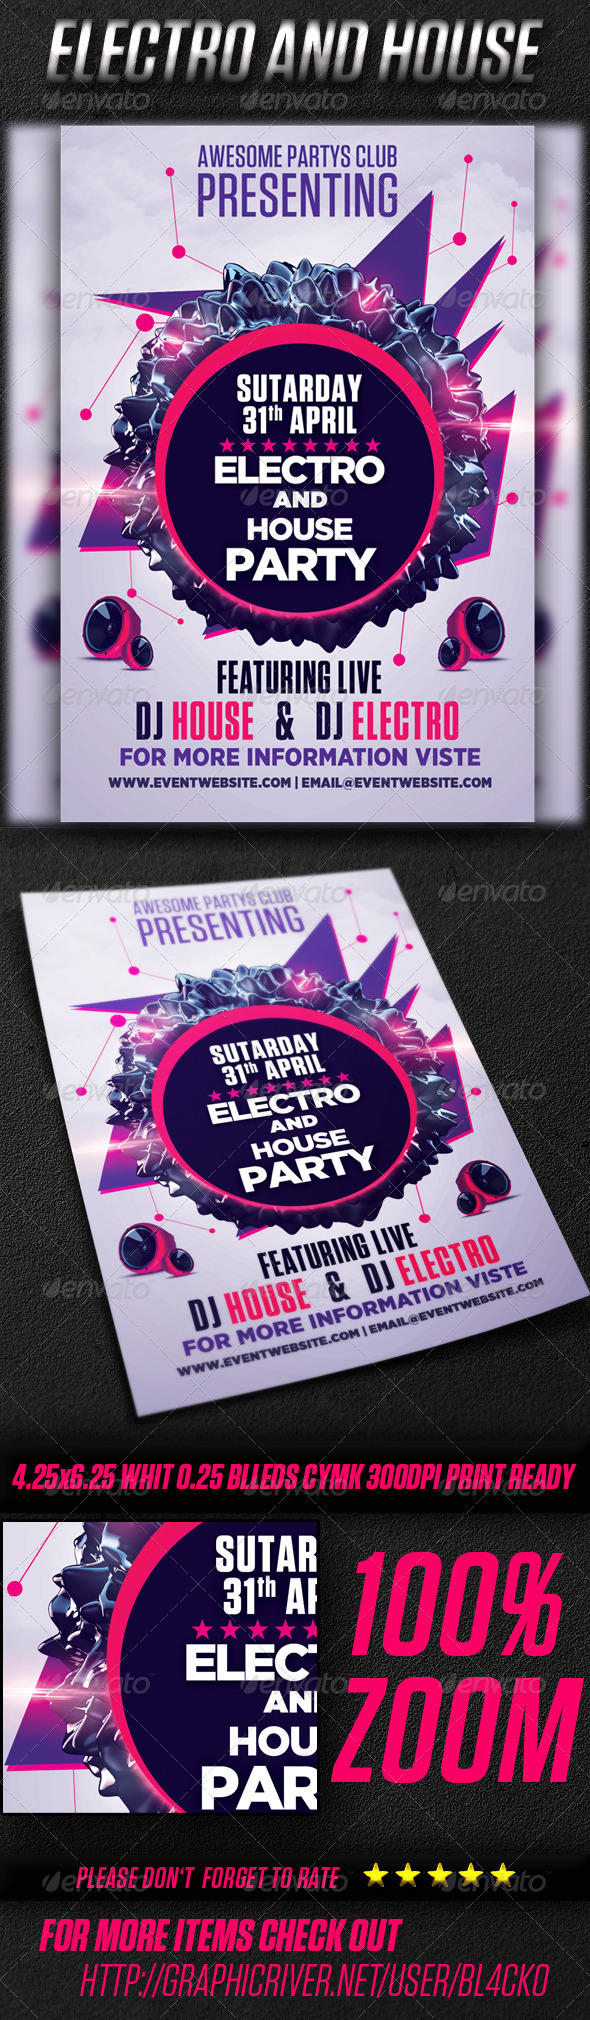 GraphicRiver Electro And House Party Vol2 4356238